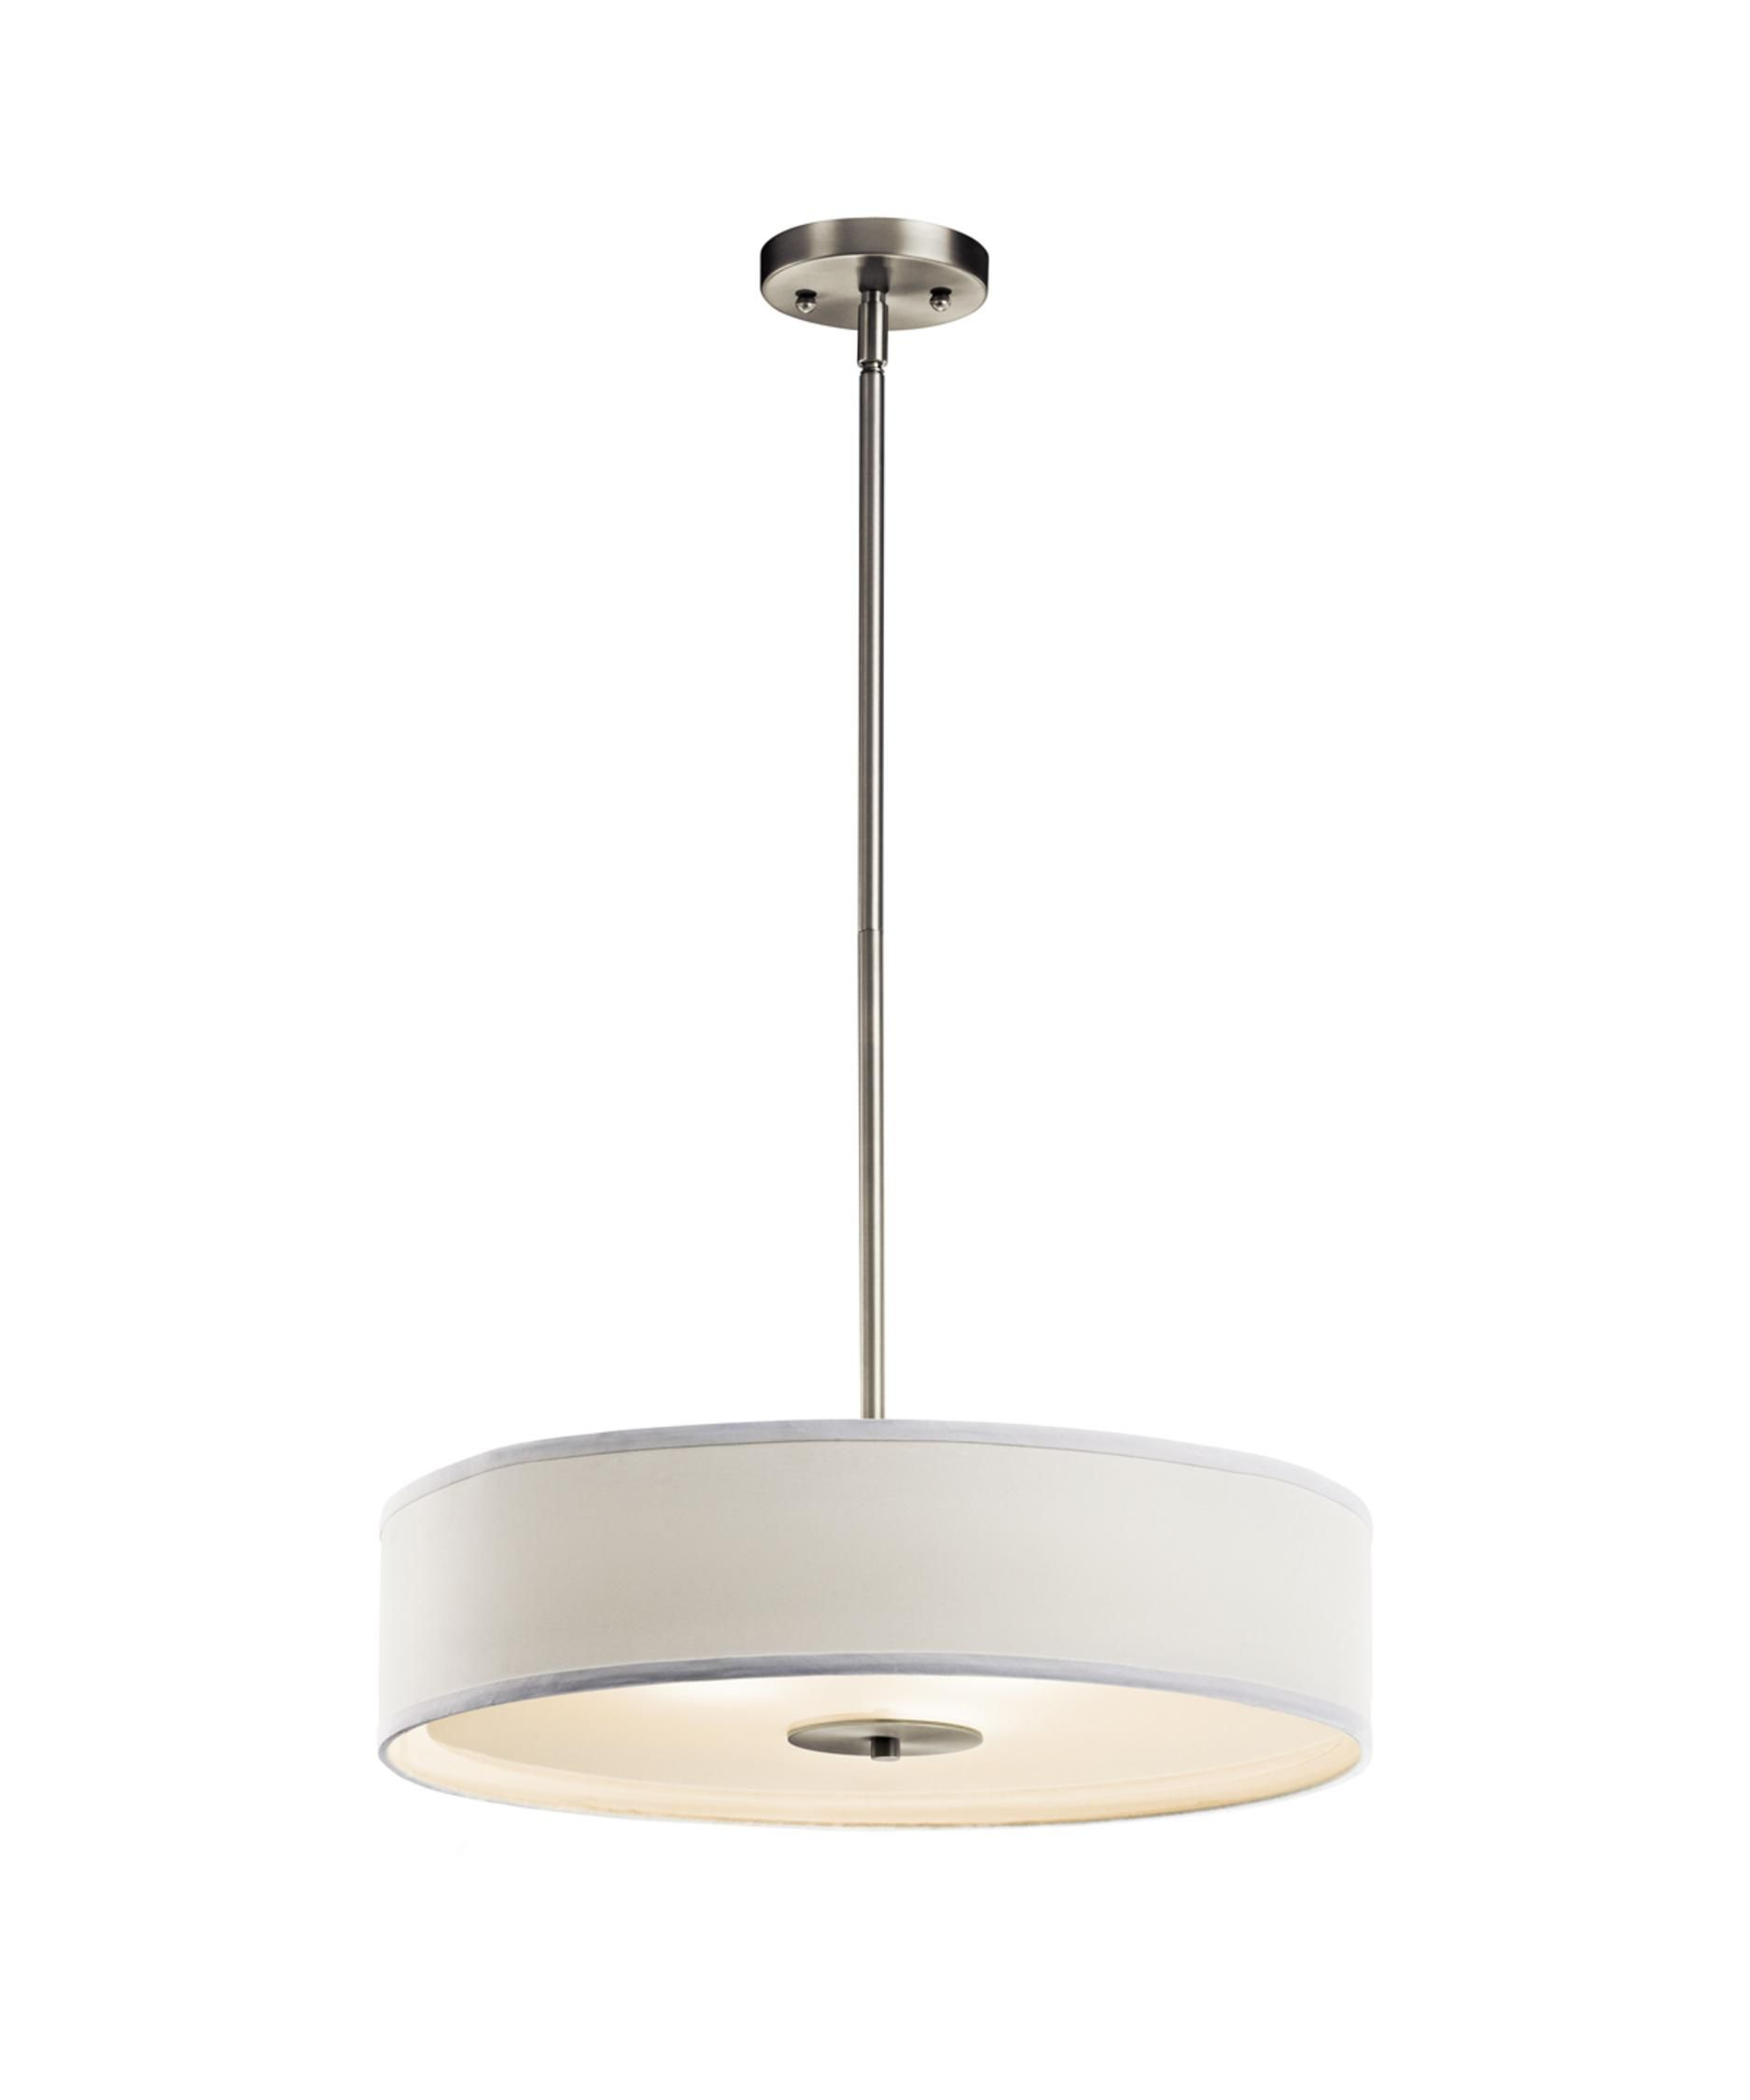 20 Inch Large Pendant by Kichler Lighting Drum pendant